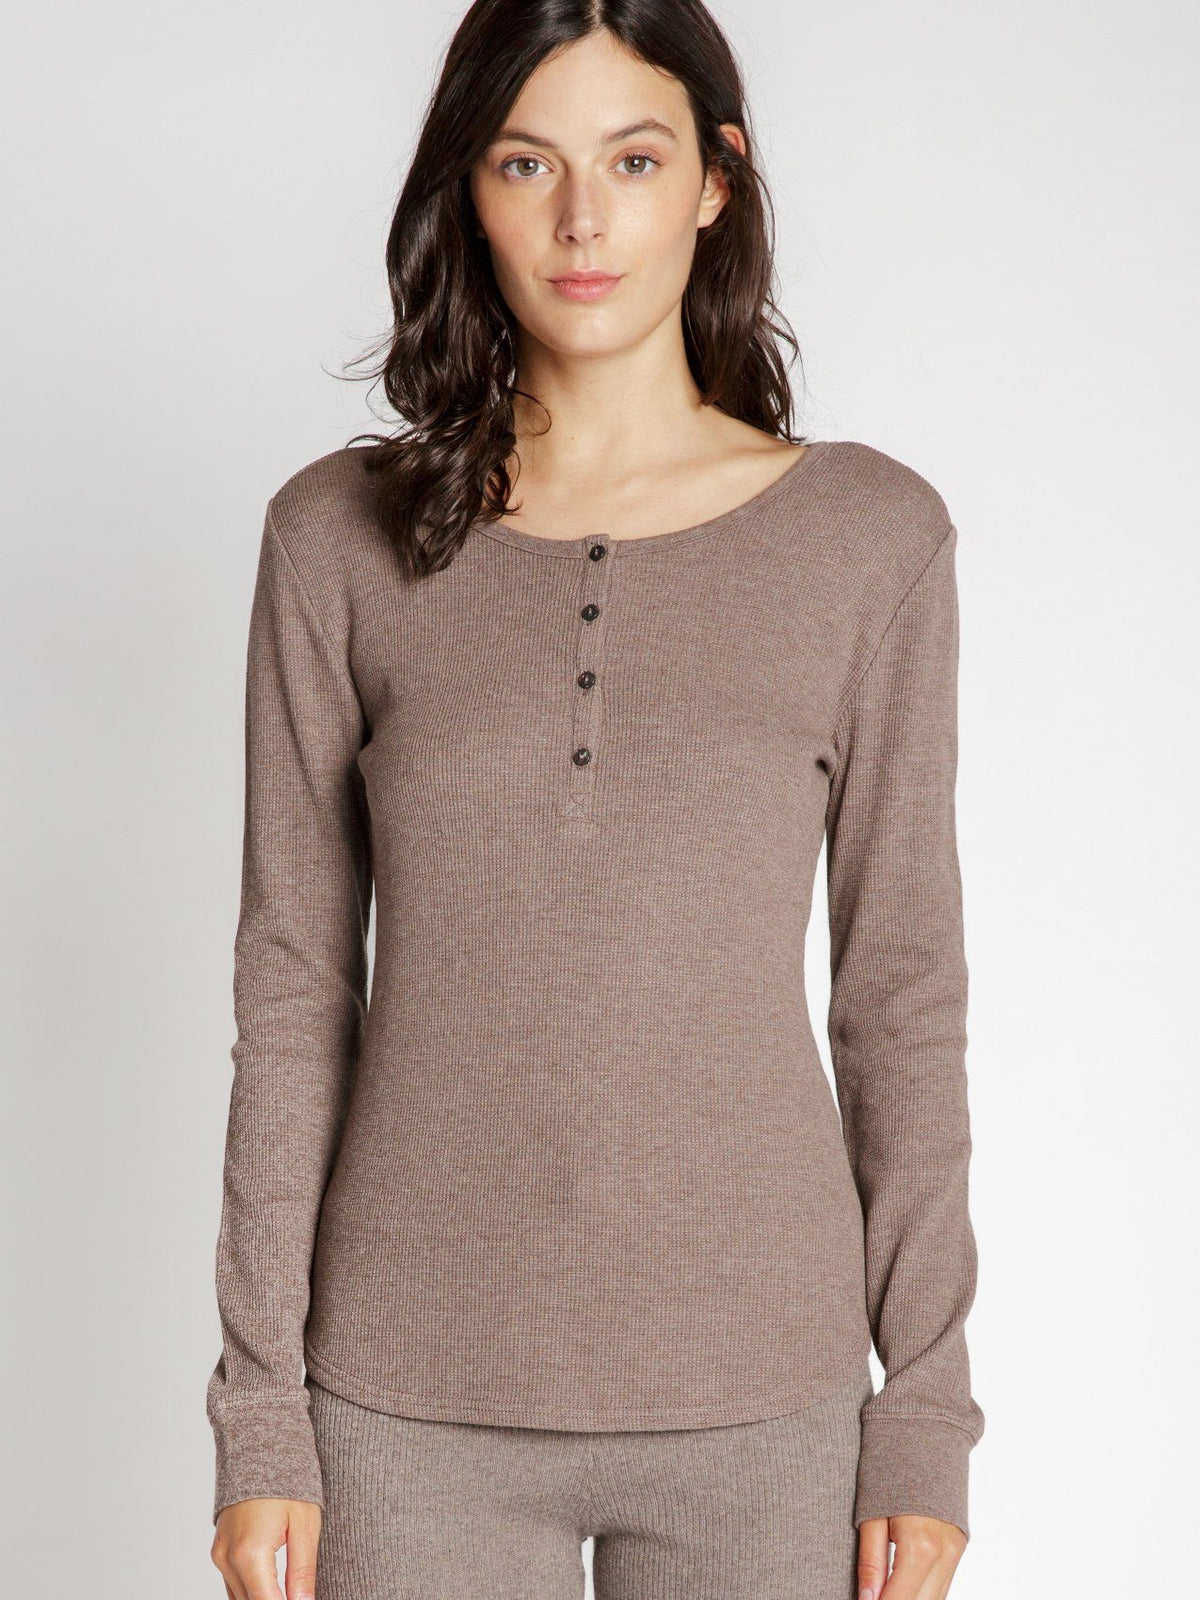 Maeve Long Sleeve Top Shirts Thread & Supply MOCHA S